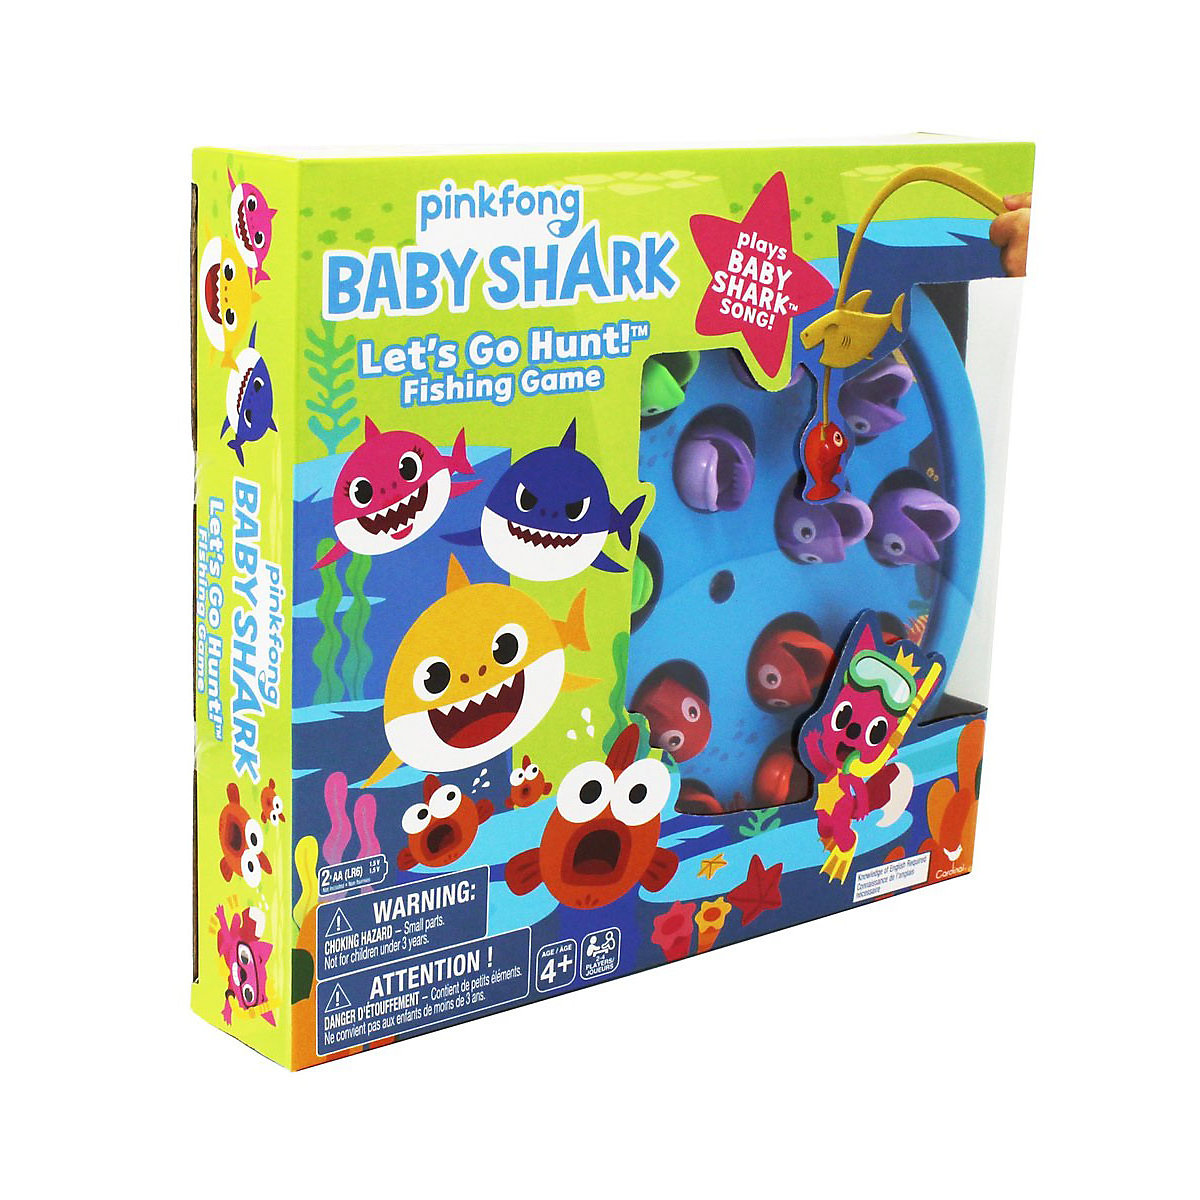 Pinkfong Baby Shark Lets Go Hunt Fishing Game Plays The Baby Shark Song